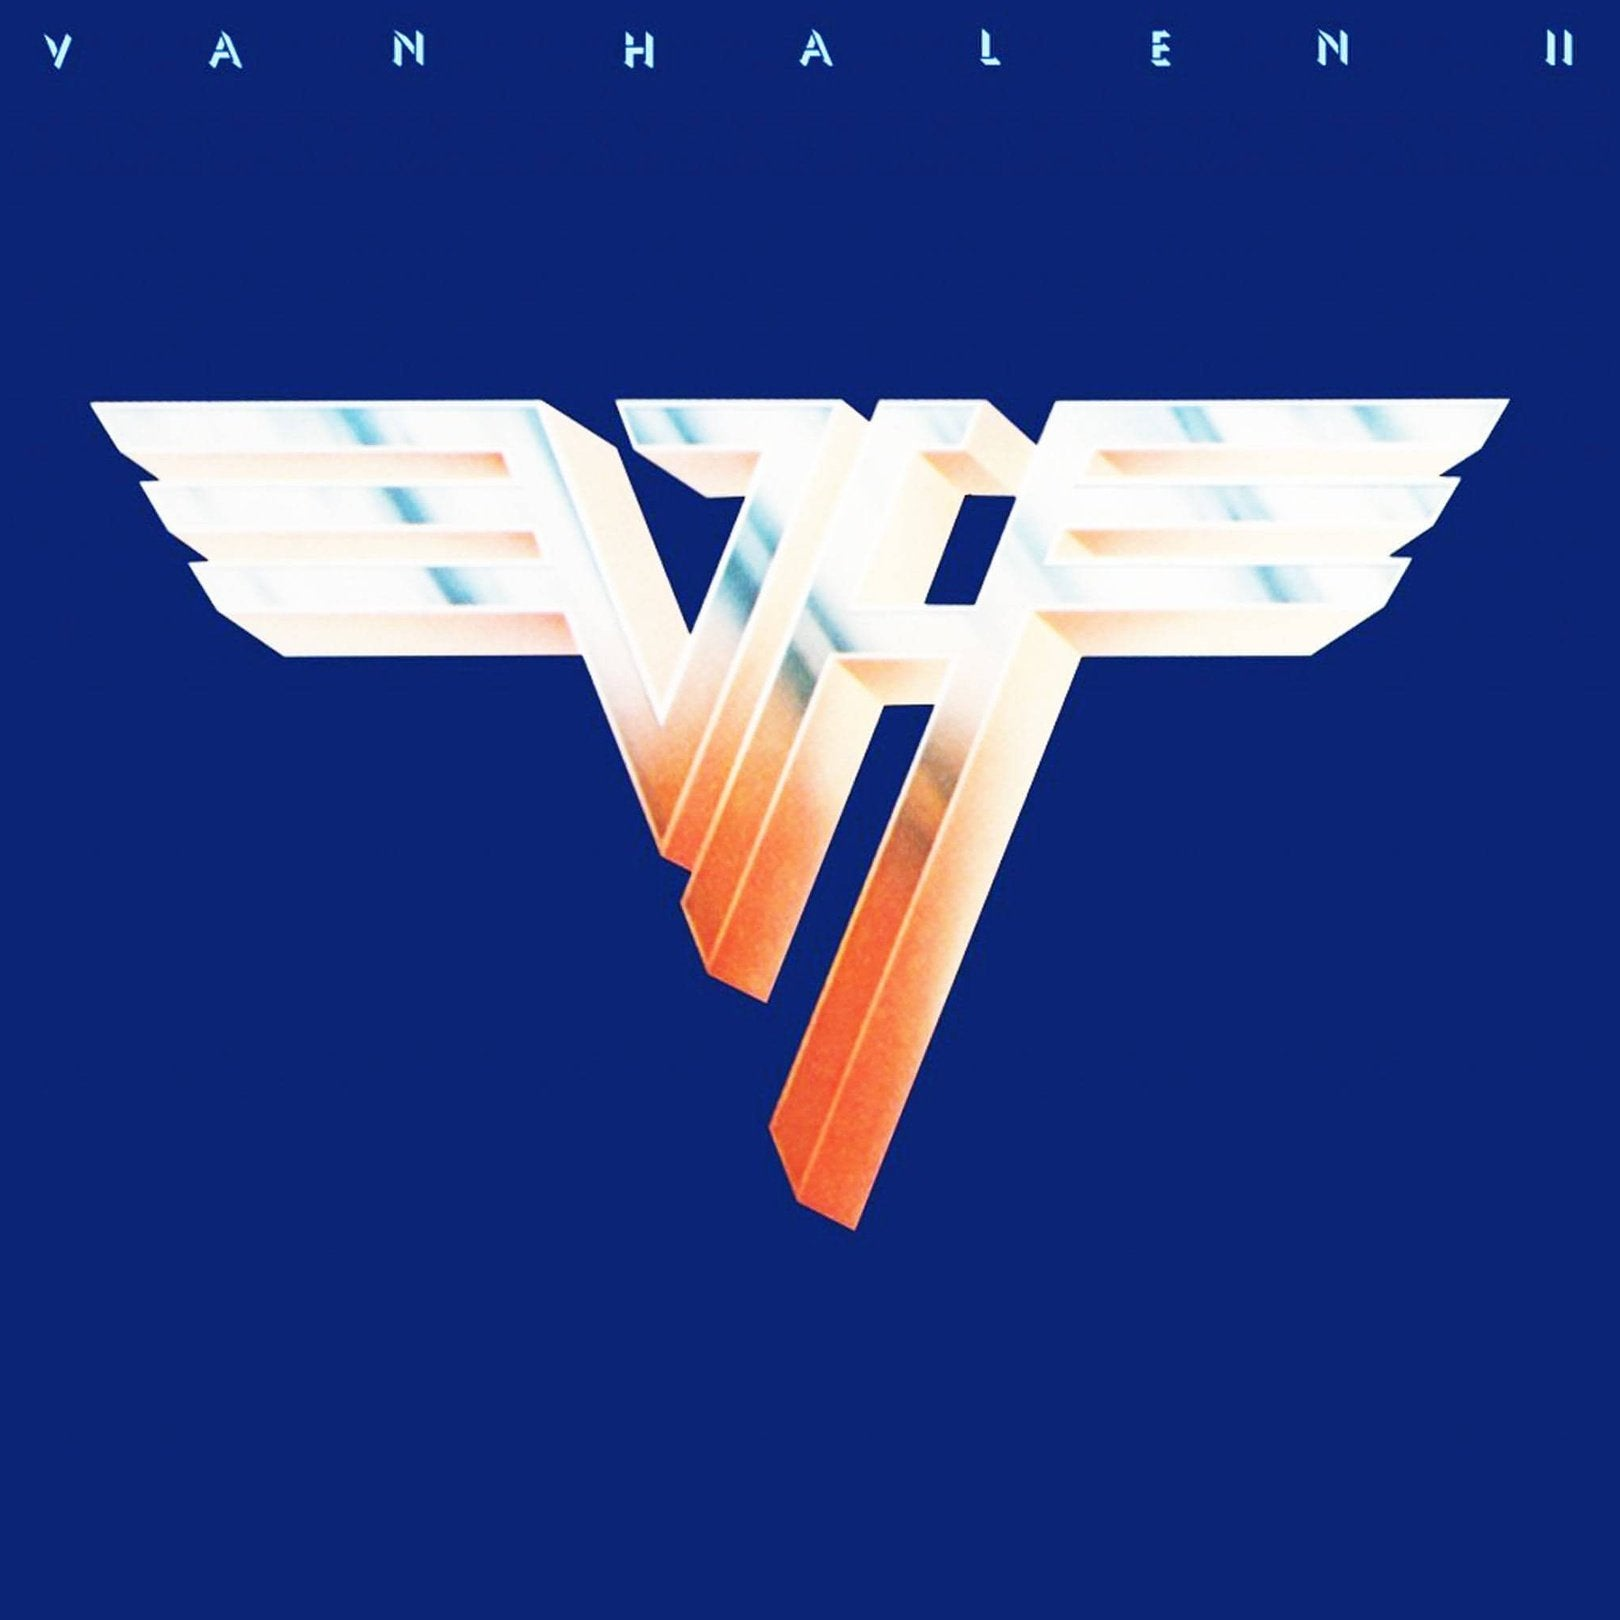 Van Halen - Van Halen - Ii - Mini Lp - Cd